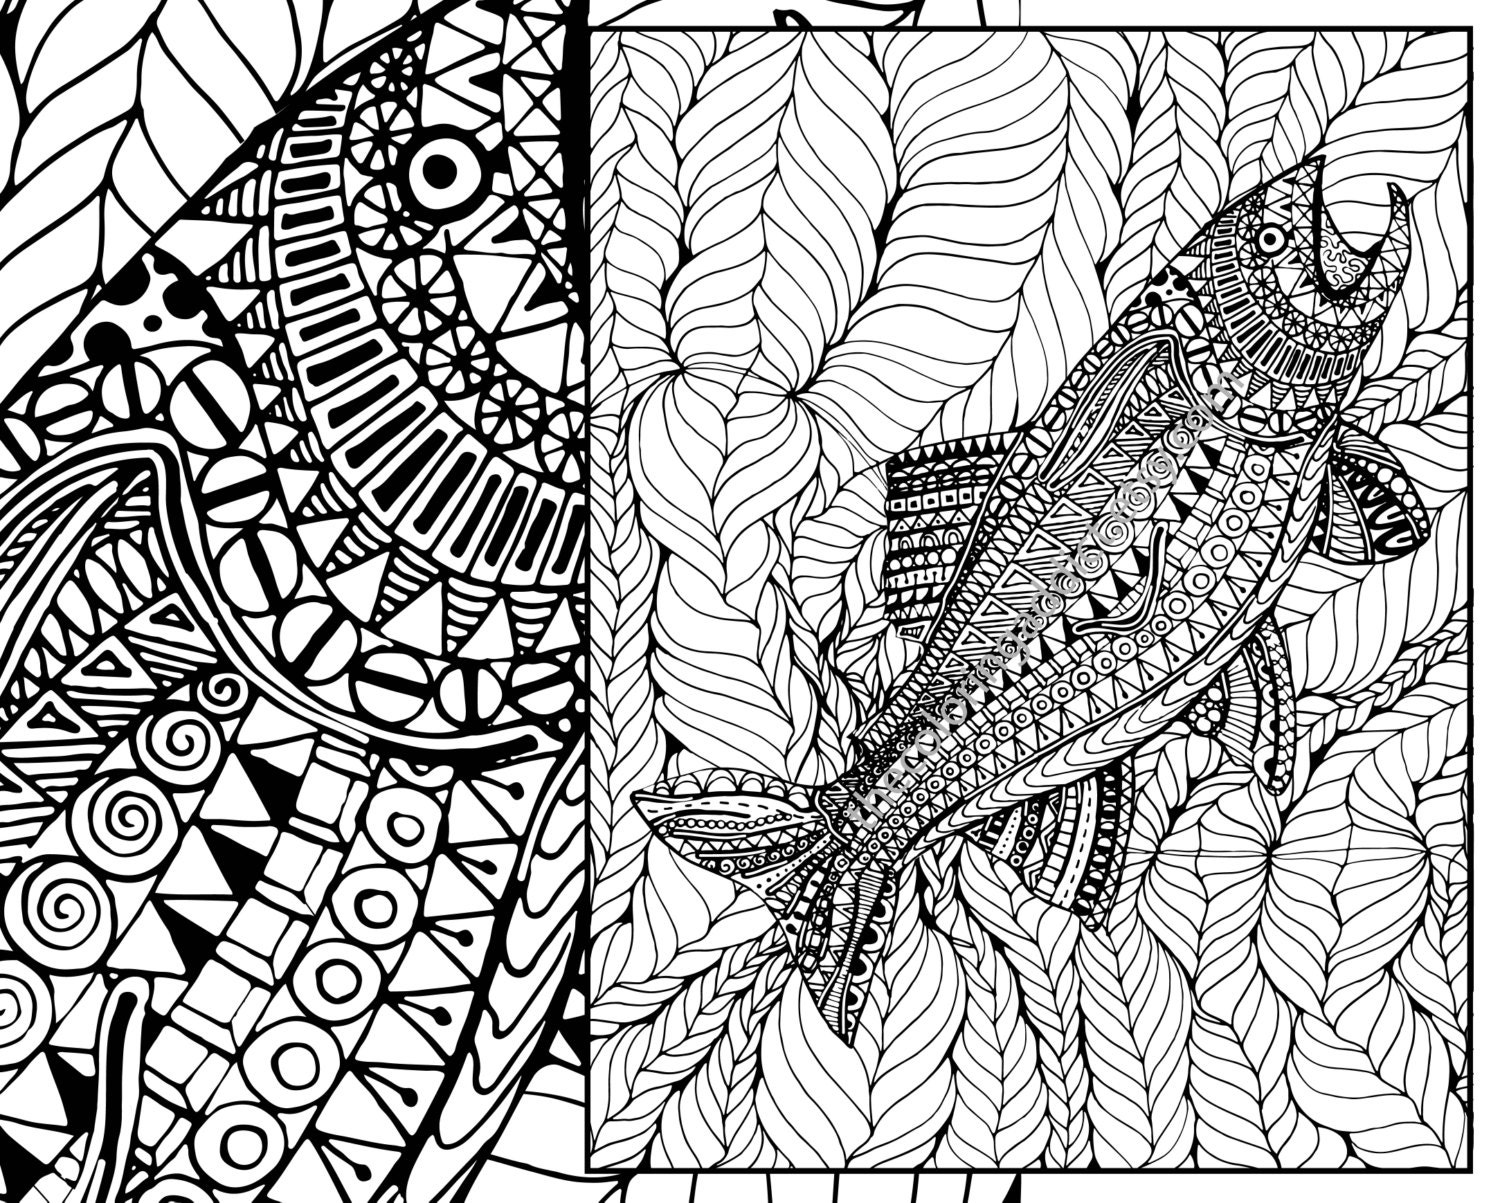 colouring books for adults in australia : Adult Coloring Page Adult Coloring Sheet Ocean Colouring Sheet Beach Adult Colouring Book Printable Sea Coloring Digital Coloring Page